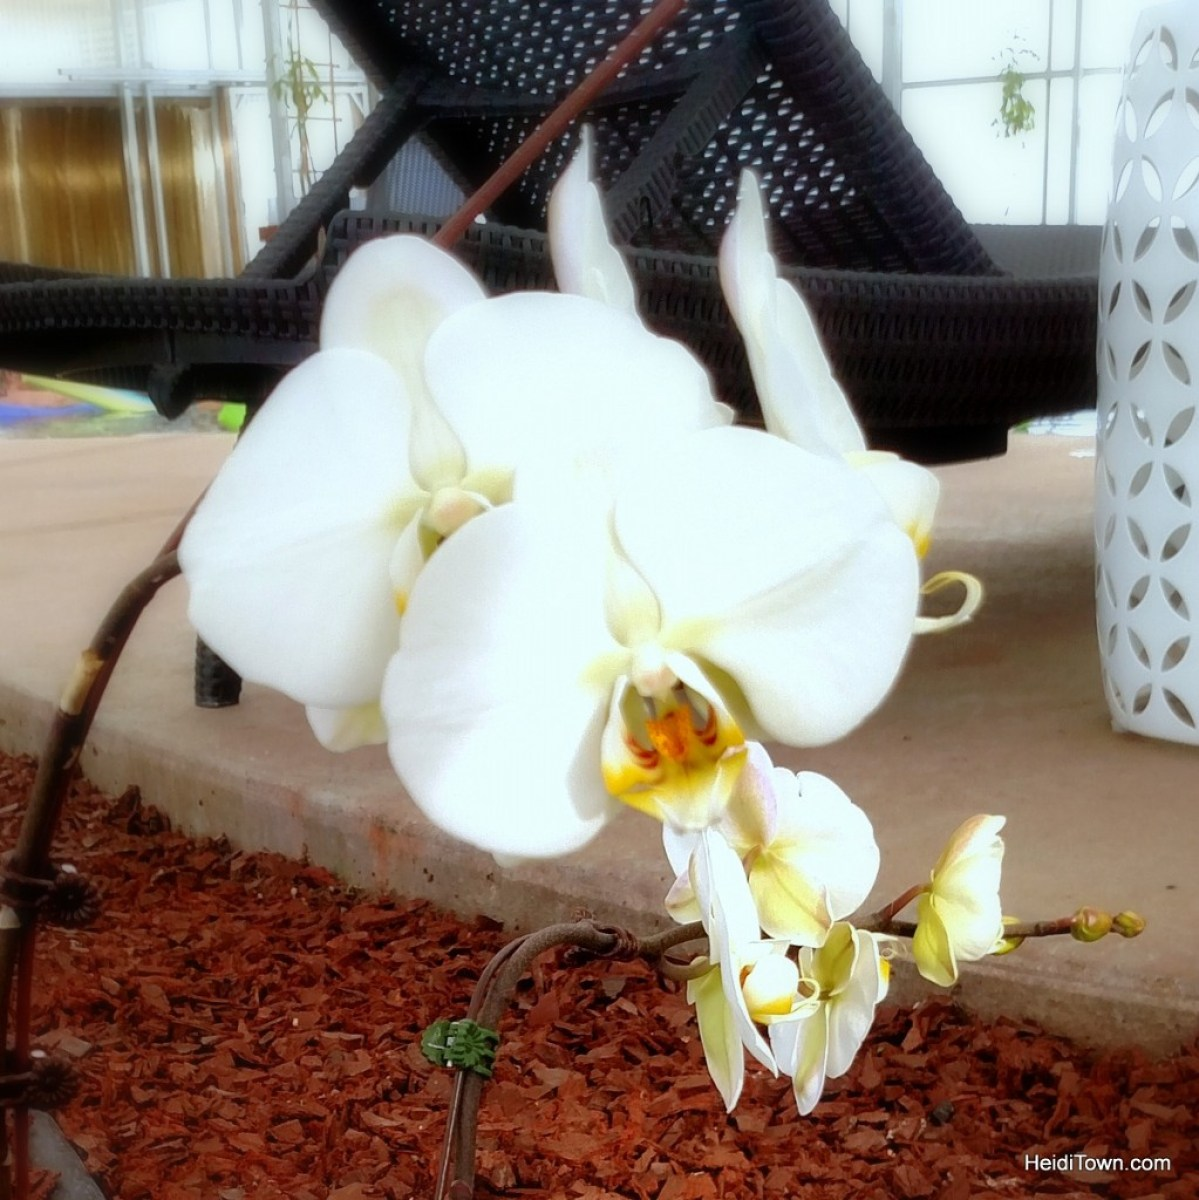 An oasis in Southern Colorado. An orchid at Sand Dunes Swimming Pool & Hot Springs. HeidiTown.com